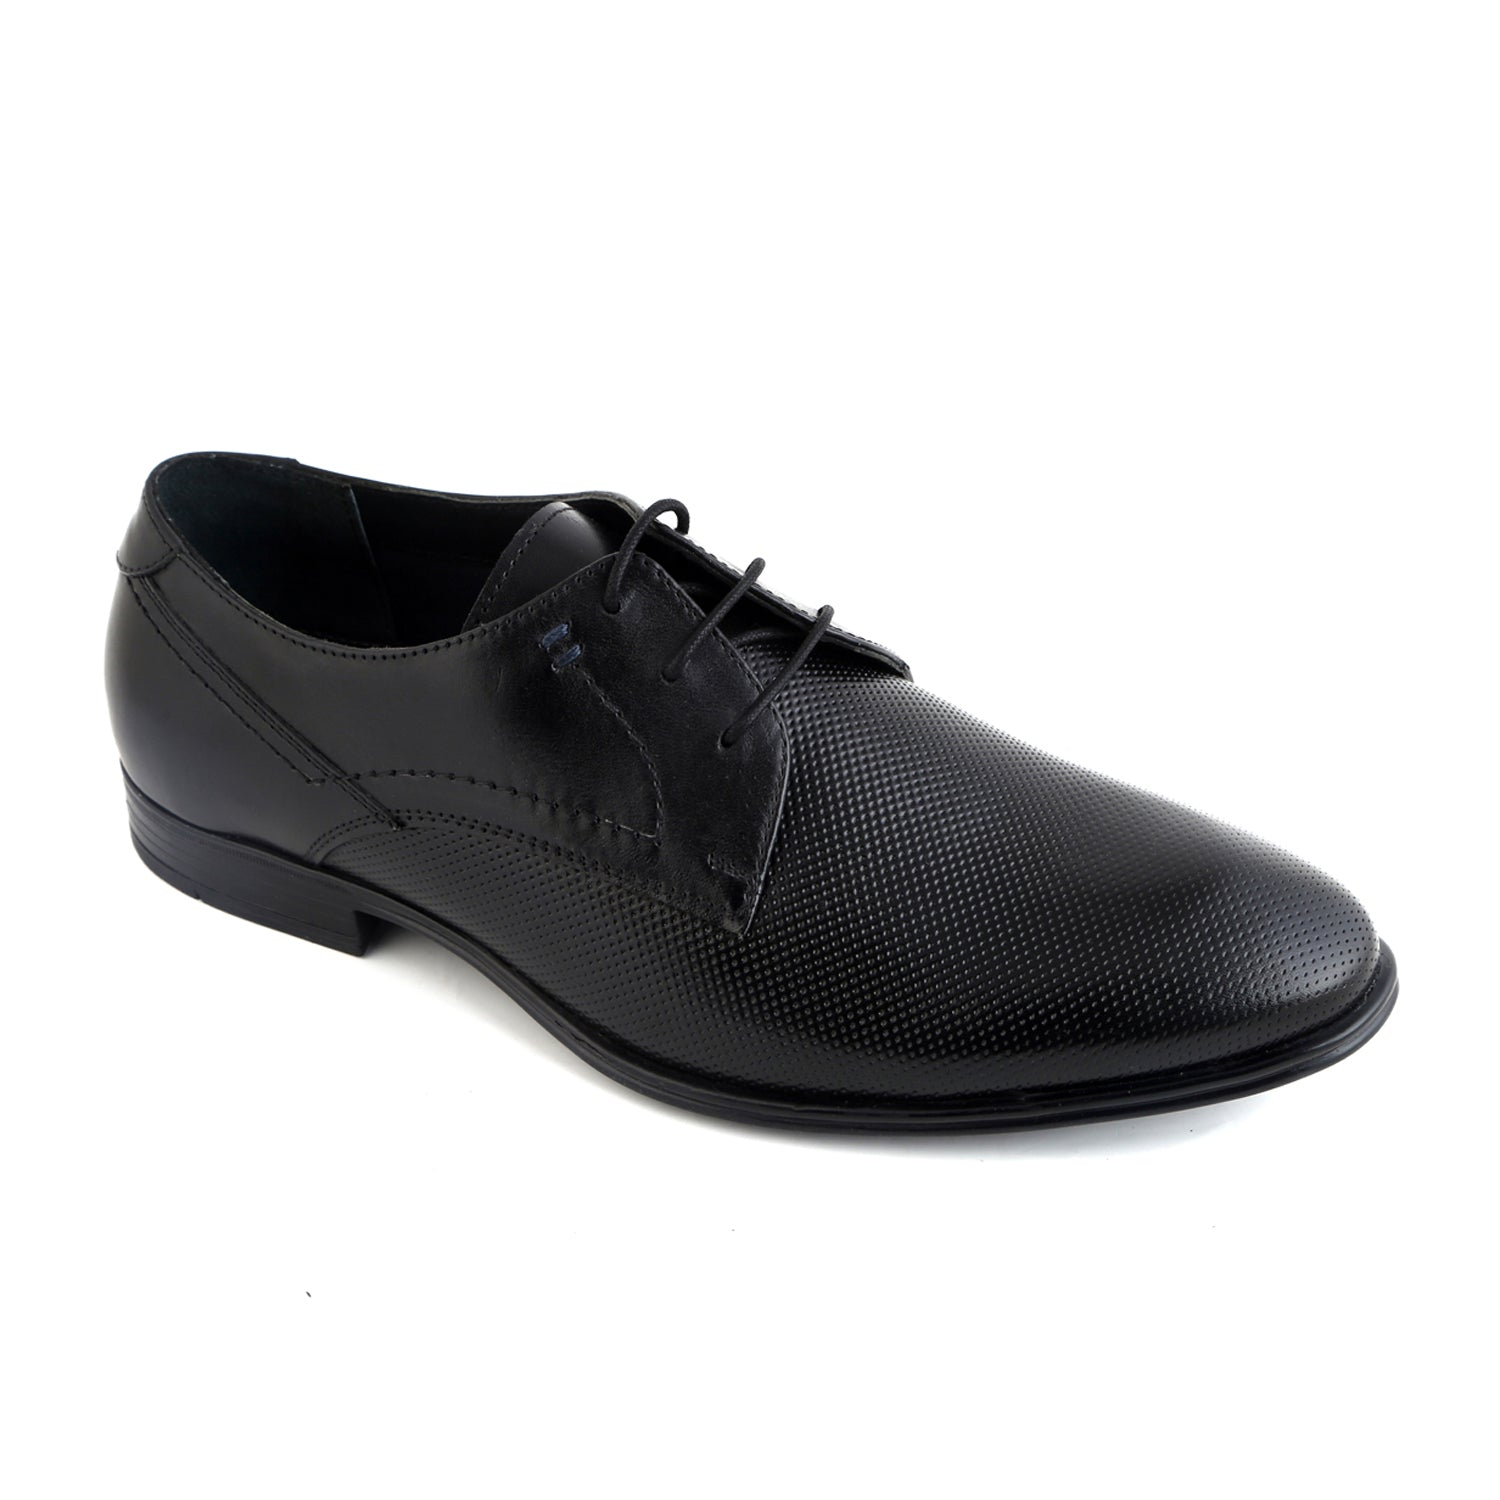 Rosanna Black Embossed Lace Up Formal Shoe